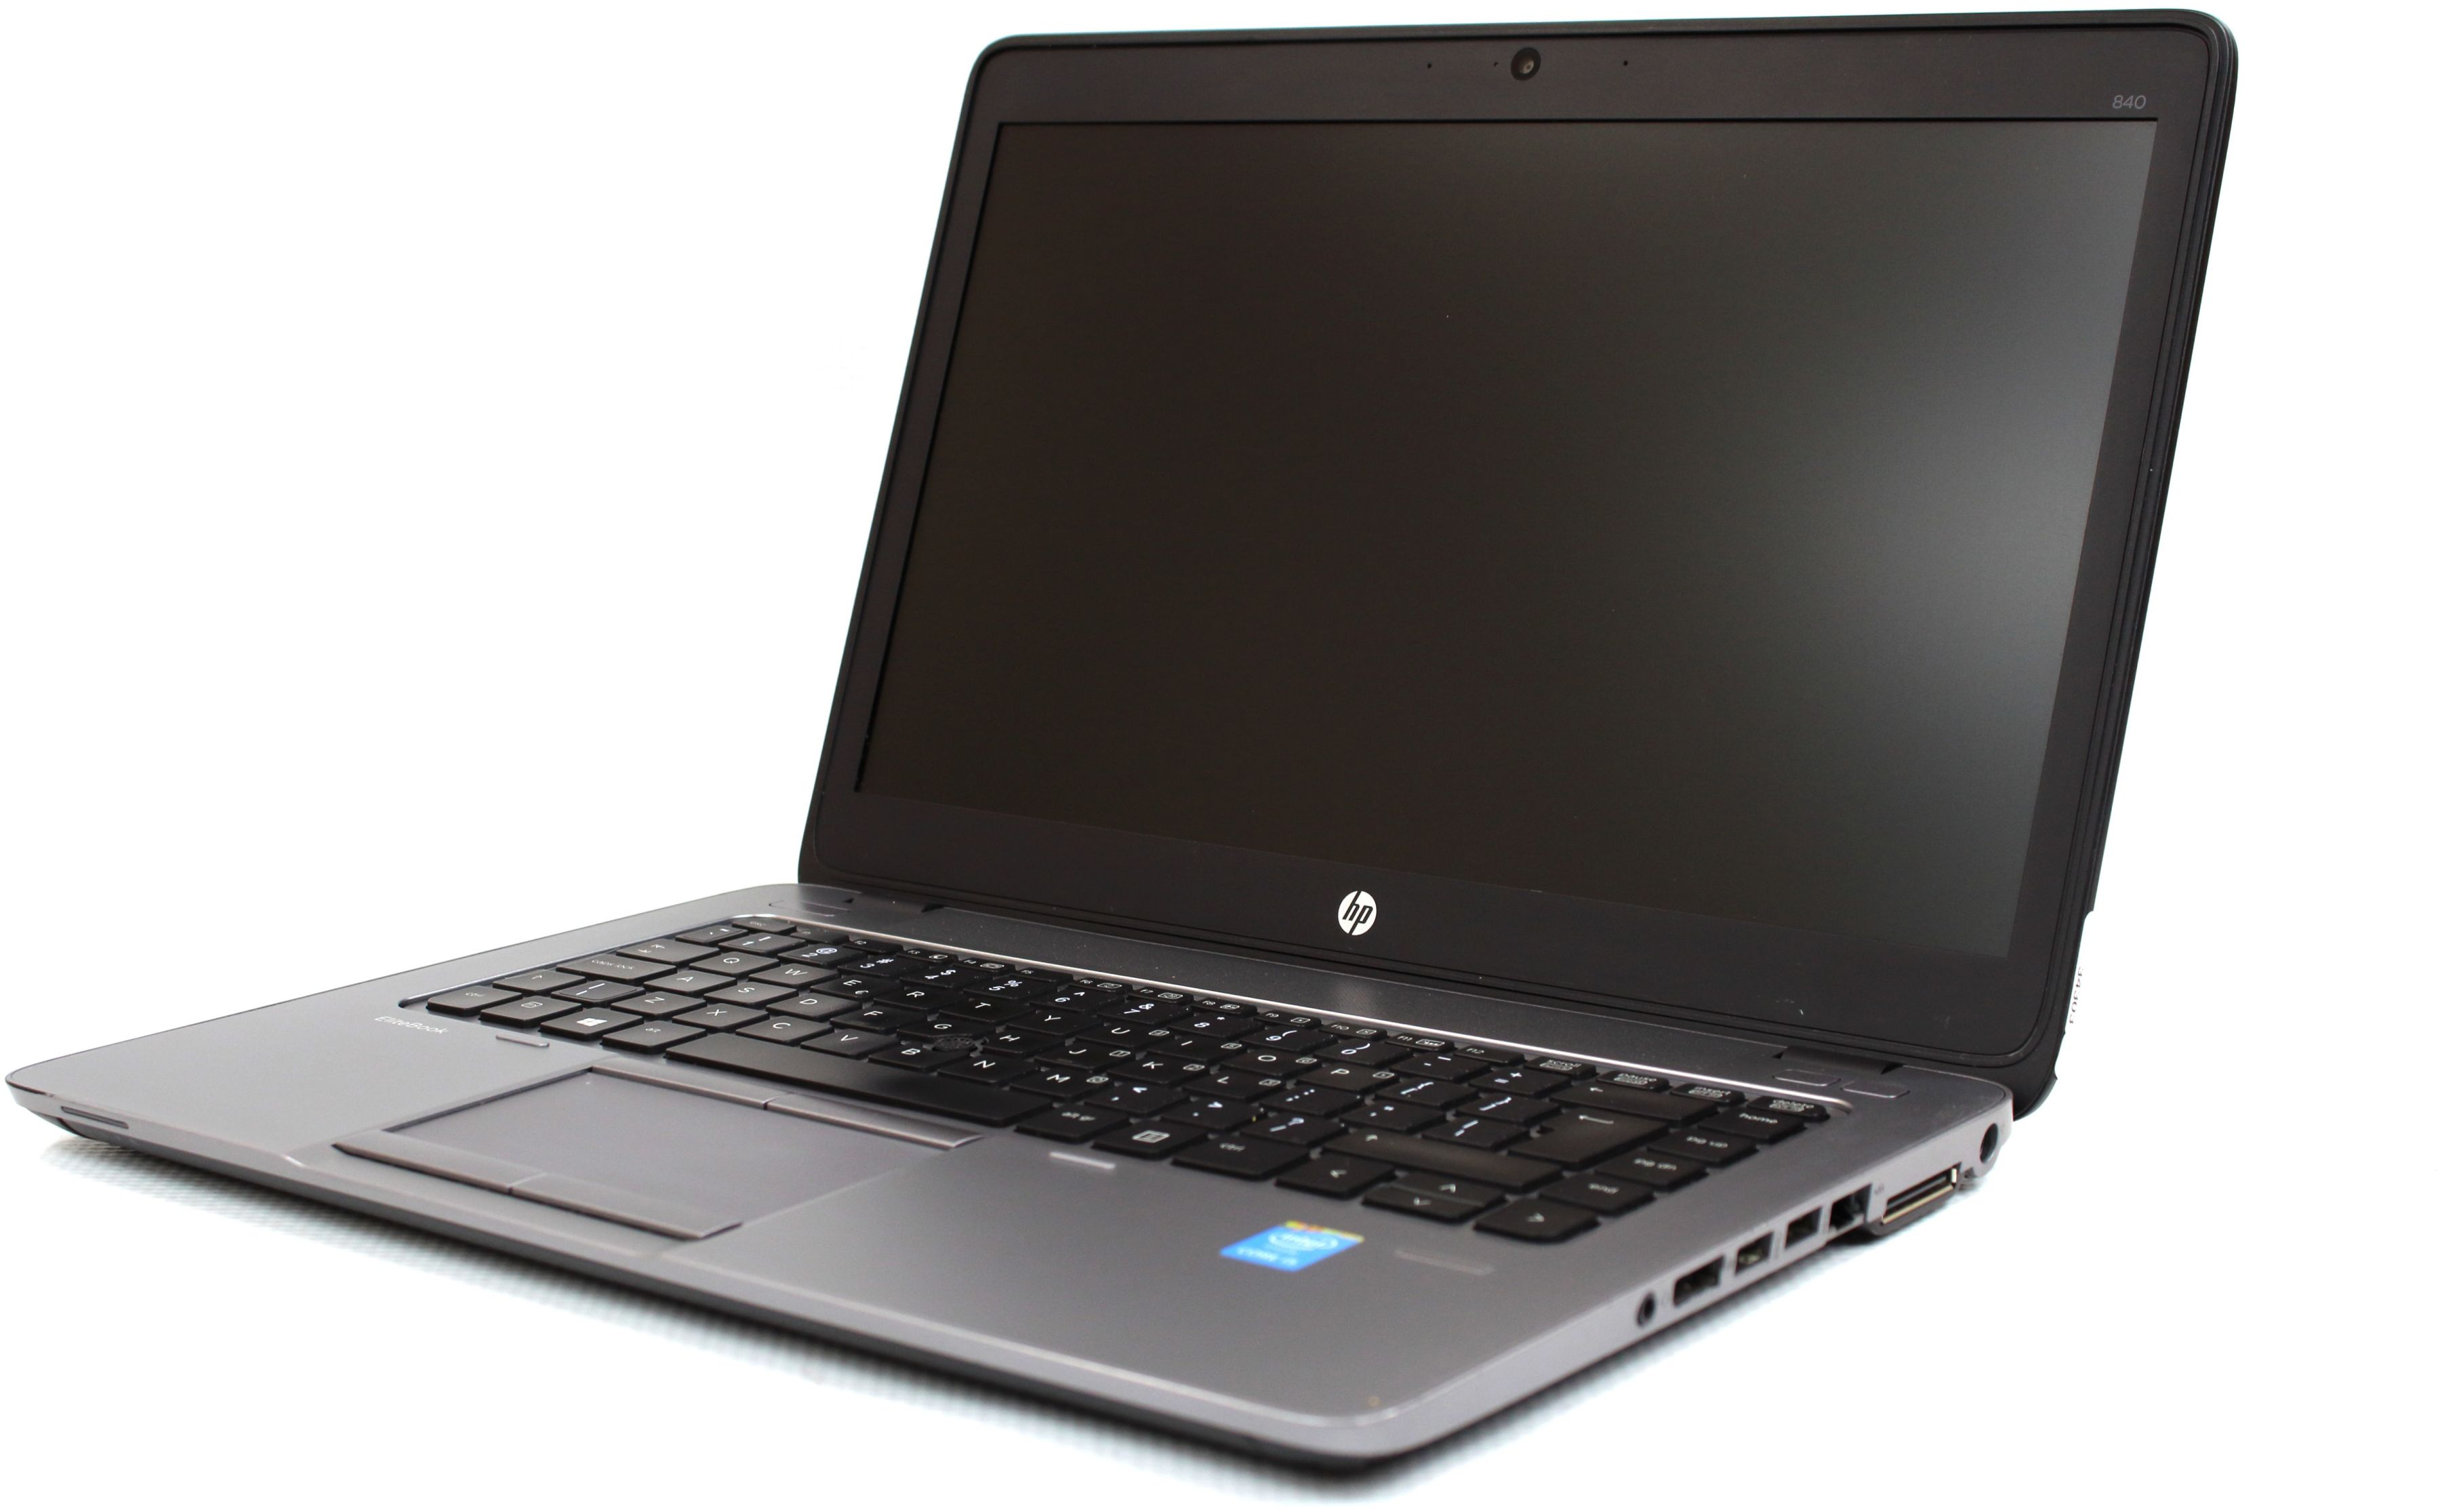 "Laptop HP EliteBook 840 G2 14.1"" HD+ i5-5300U 2x2.90GHz 8GB 256GB SSD Kamera Windows 7/8/10 Pro (Klasa A-)"